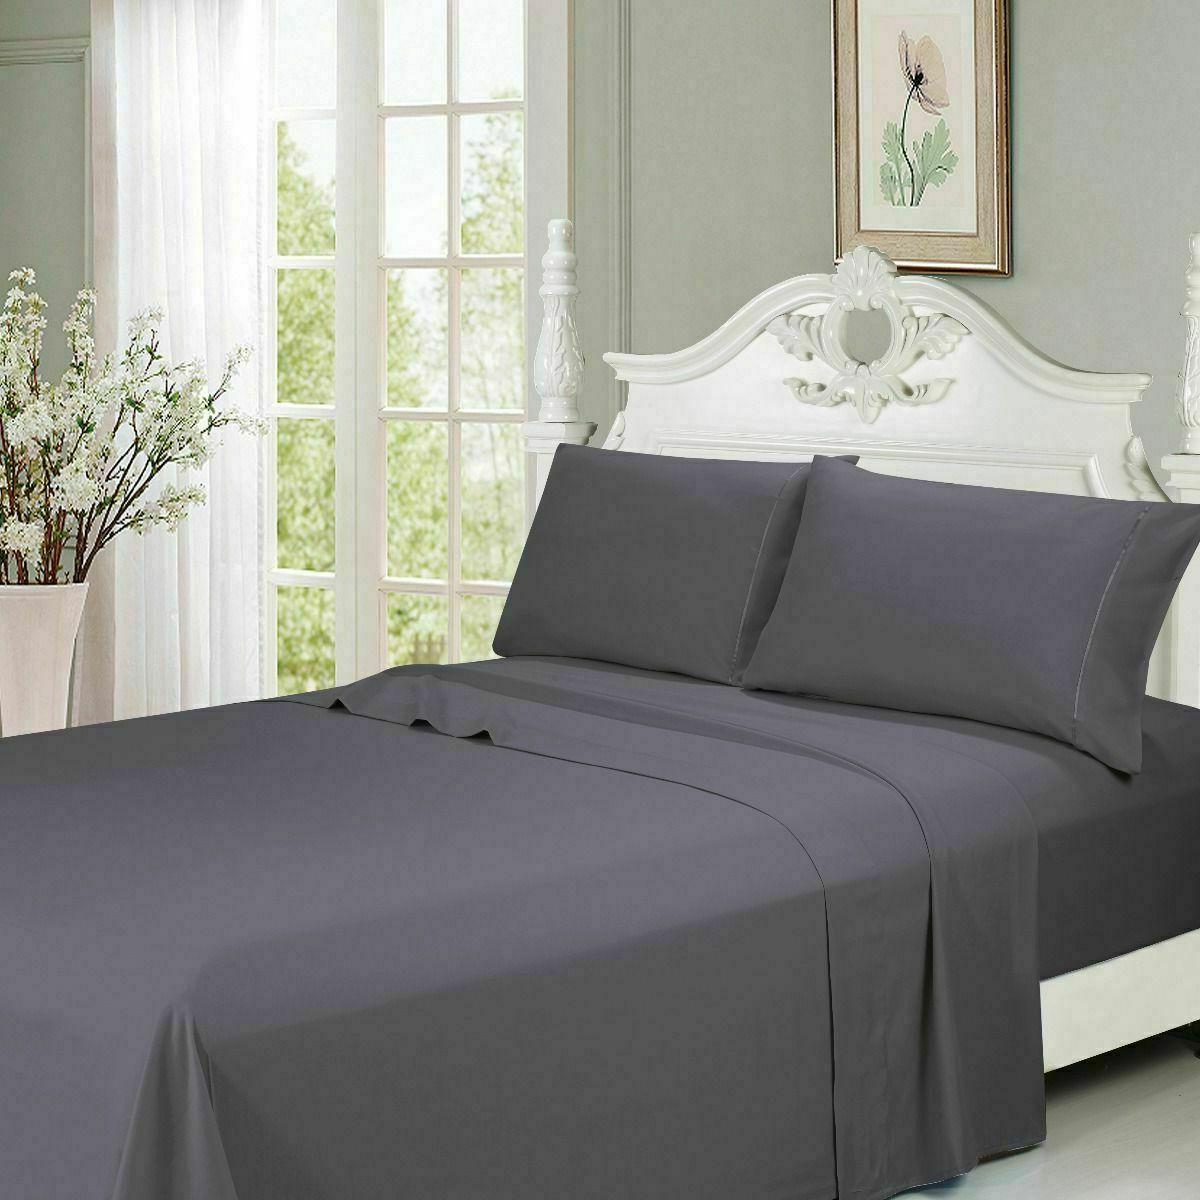 Egyptian Series Piece Bed Sheet Pocket Sheets